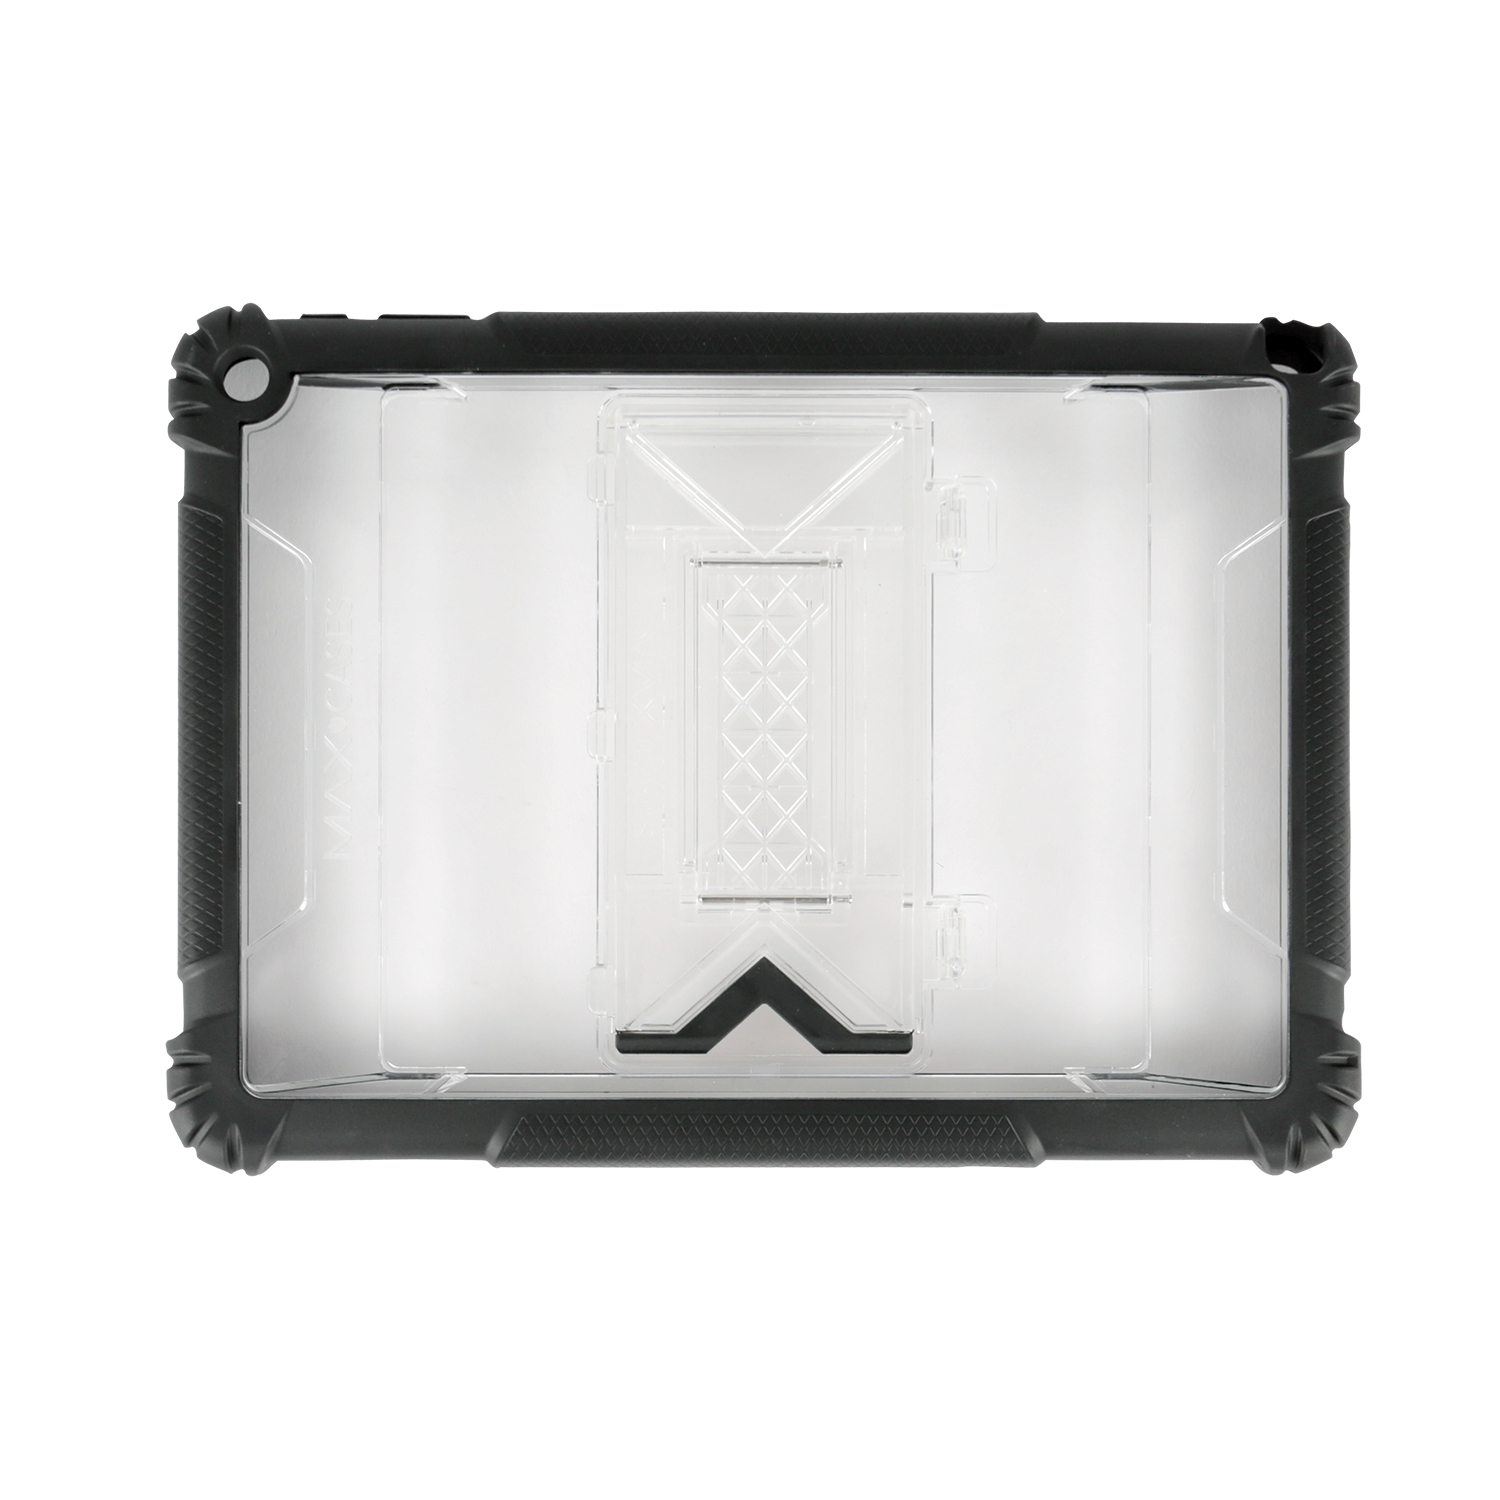 Max Cases Shield Extreme - Back Cover For Tablet - Silicone, Polycarbonate, Tpe - Clear